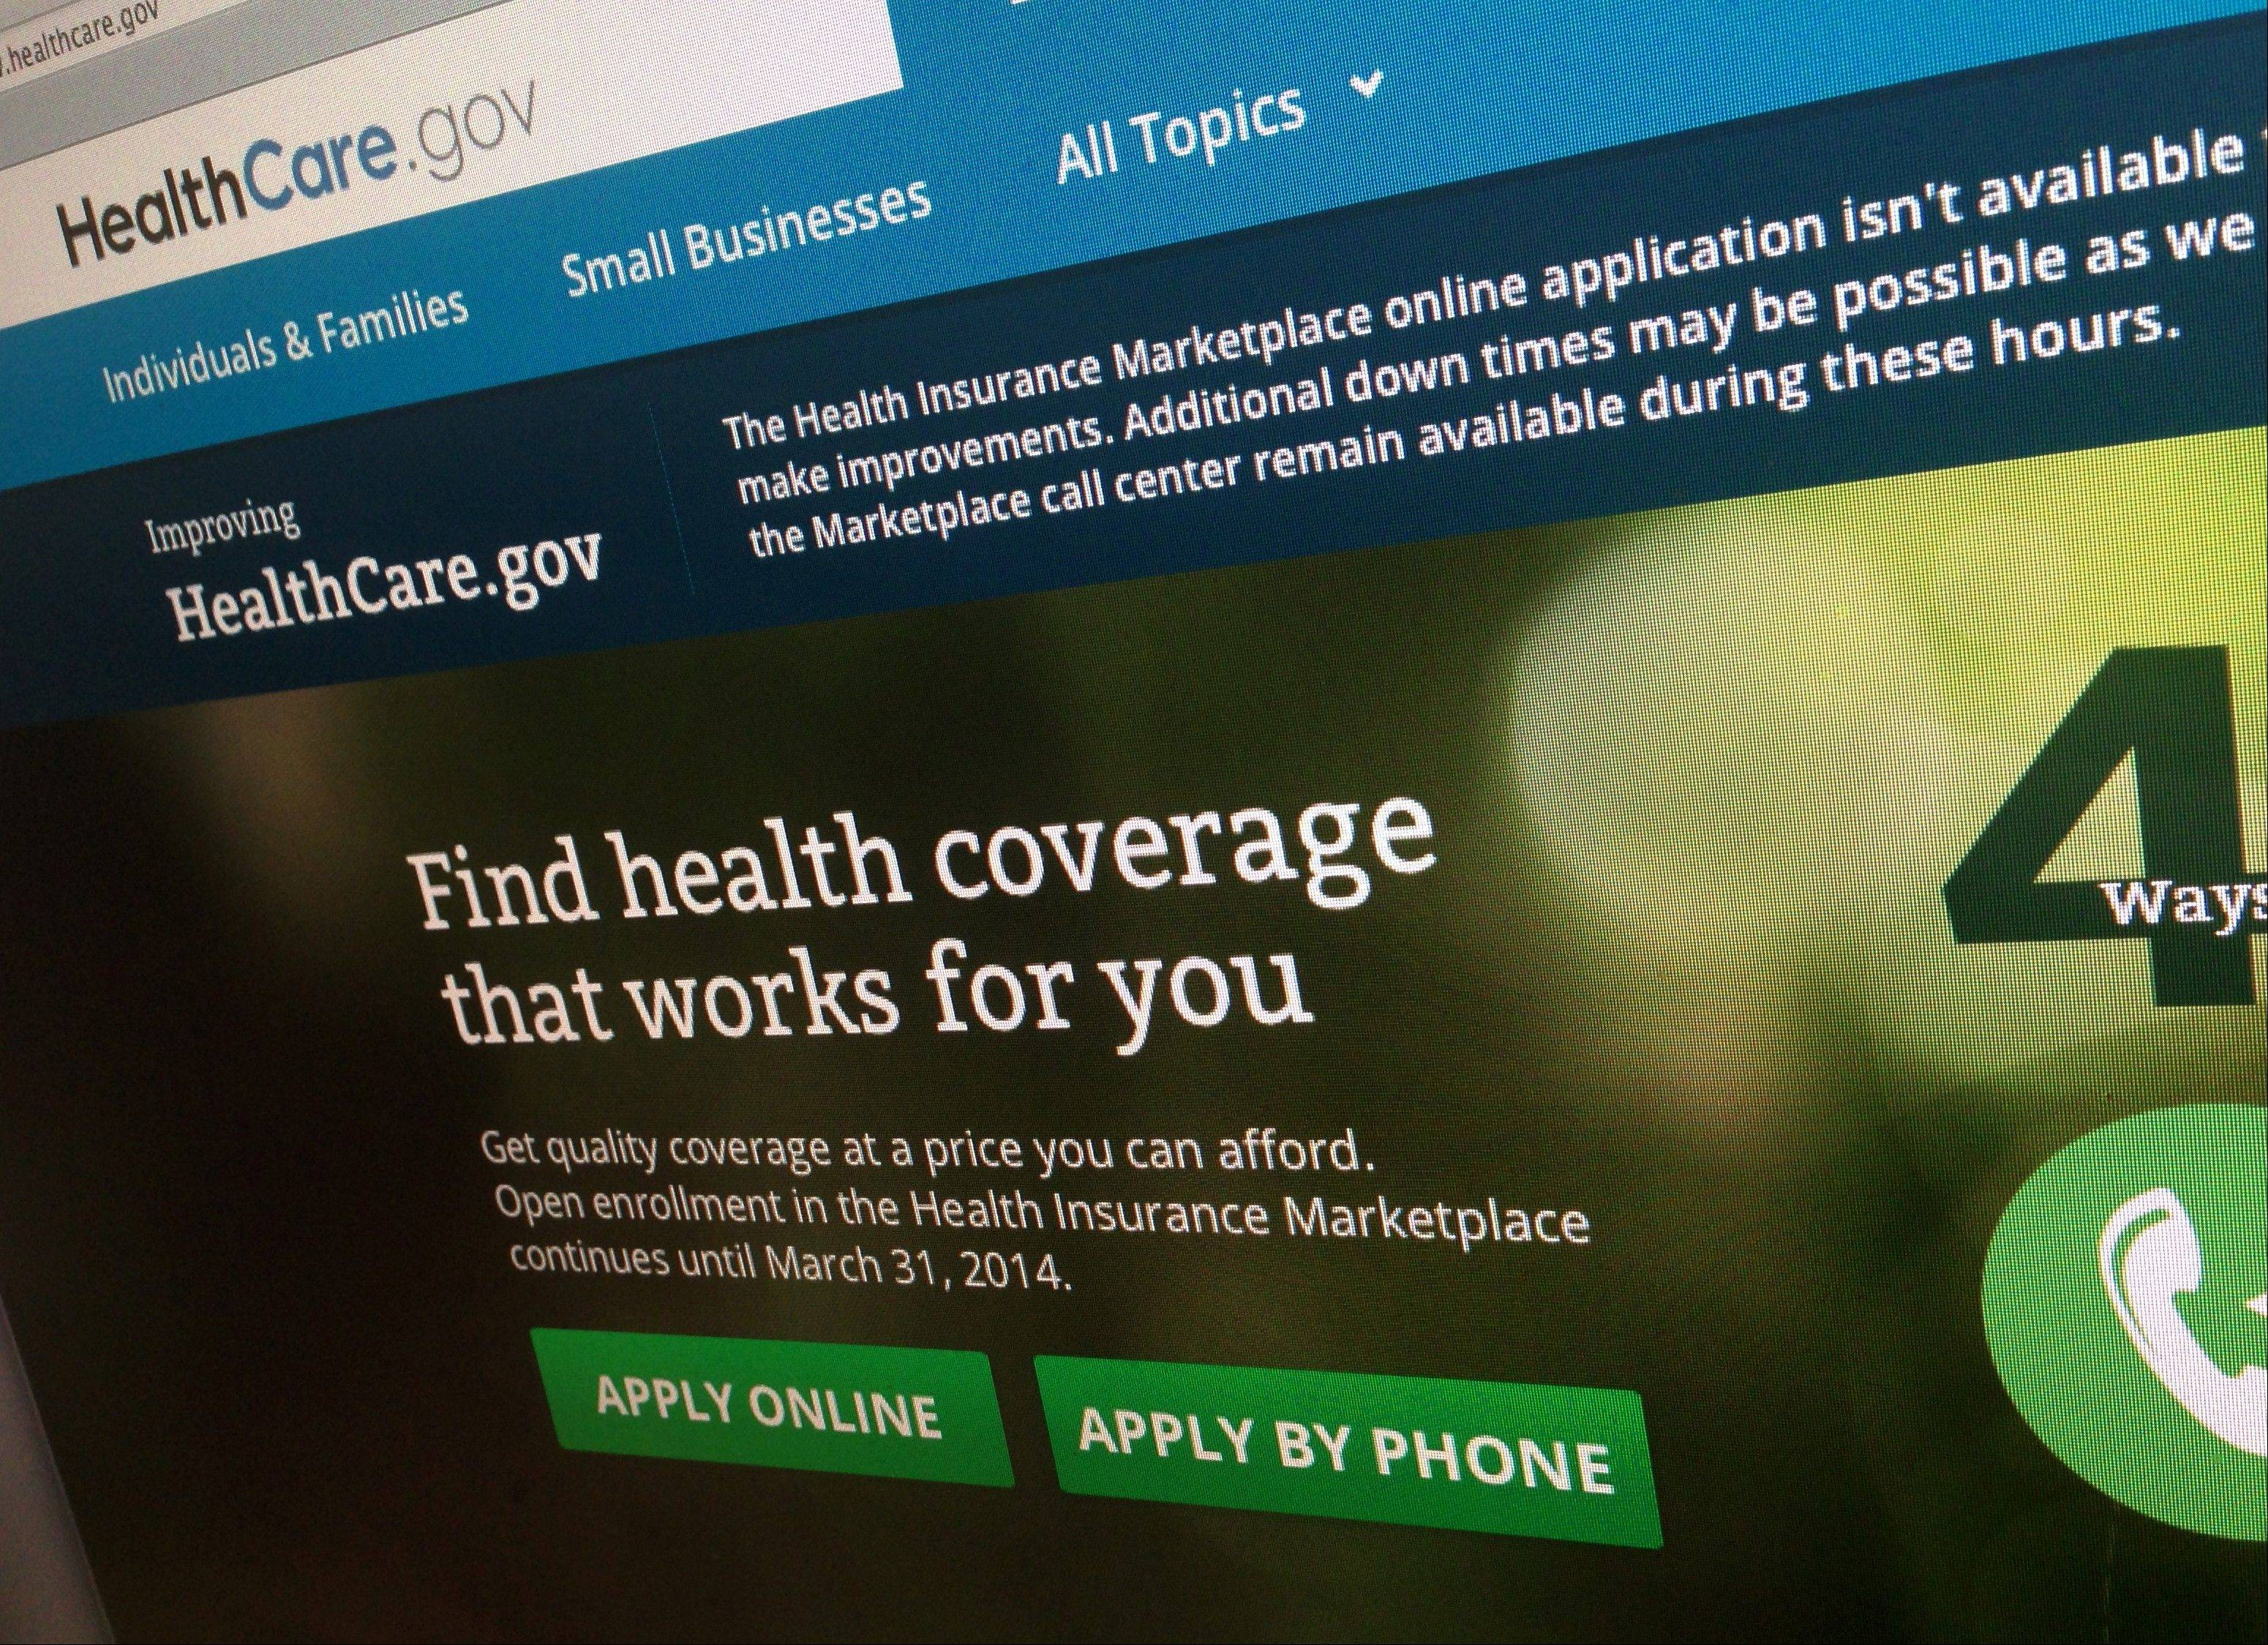 Millions of Americans finally able to get health insurance through the Affordable Care Act may have struggled with the health care exchange website, but they persisted and are happy not to have to worry about health insurance anymore.